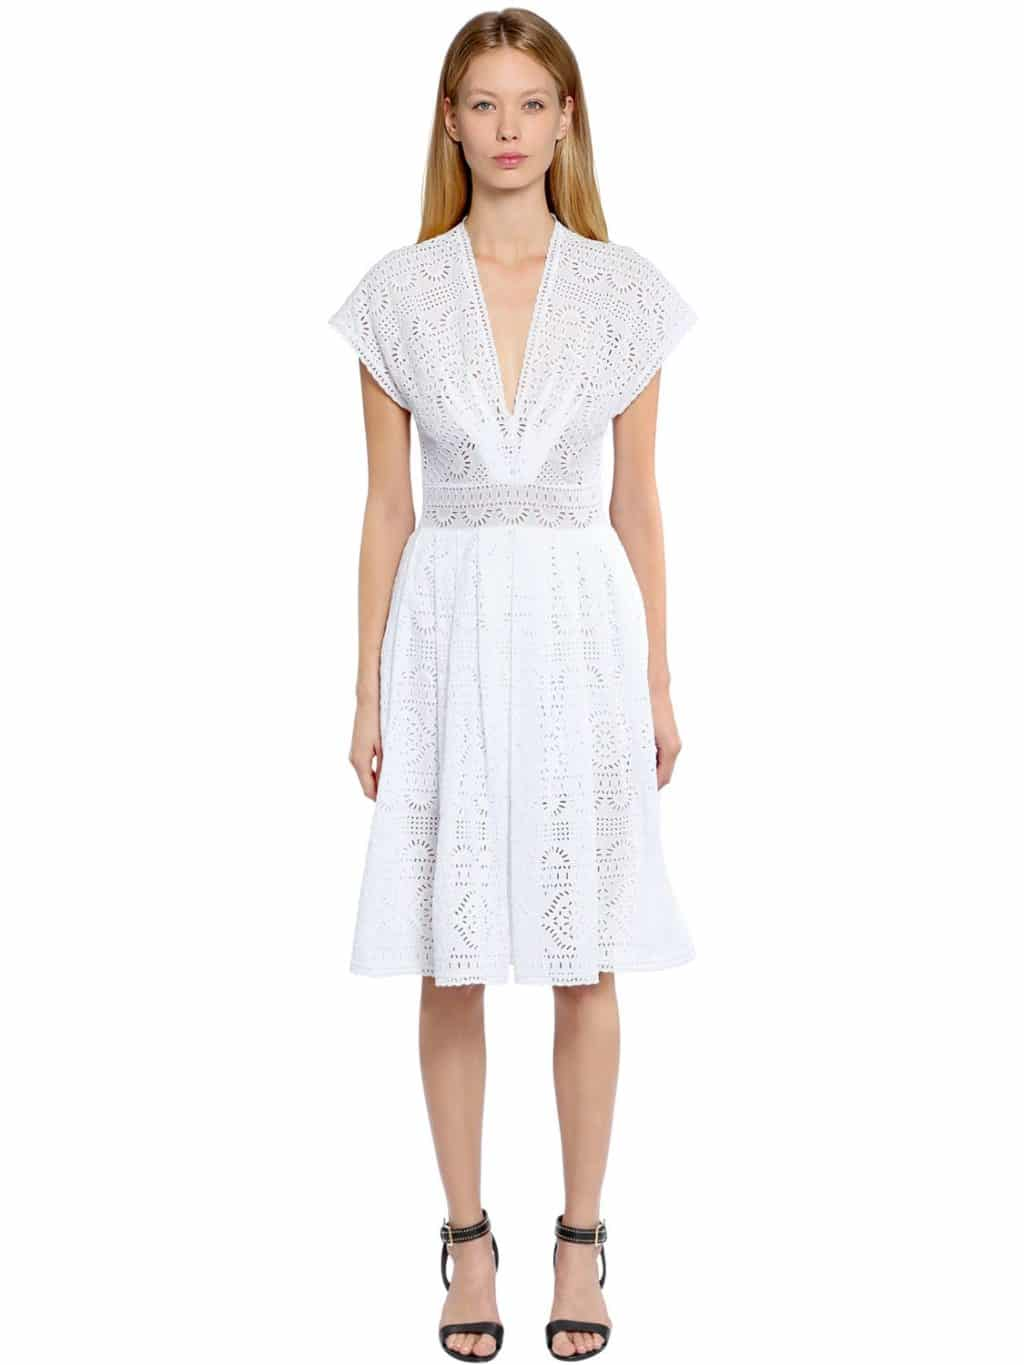 5cdf7e2332 ERMANNO SCERVINO Cotton Eyelet Lace White Dress - We Select Dresses